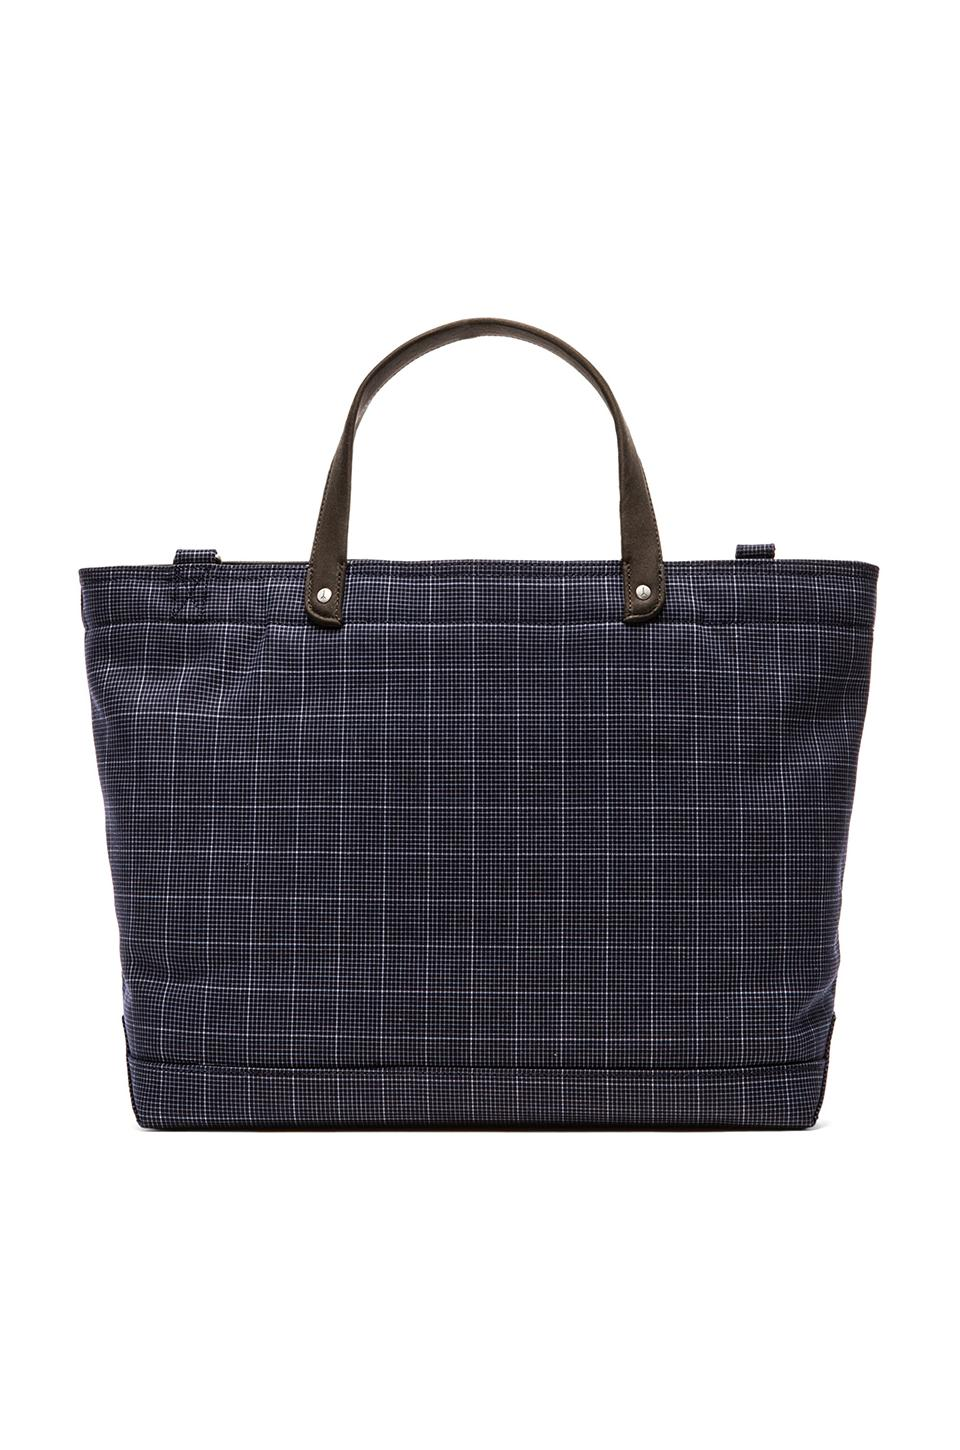 Jack Spade Graph Check Coal Bag in Navy & Black